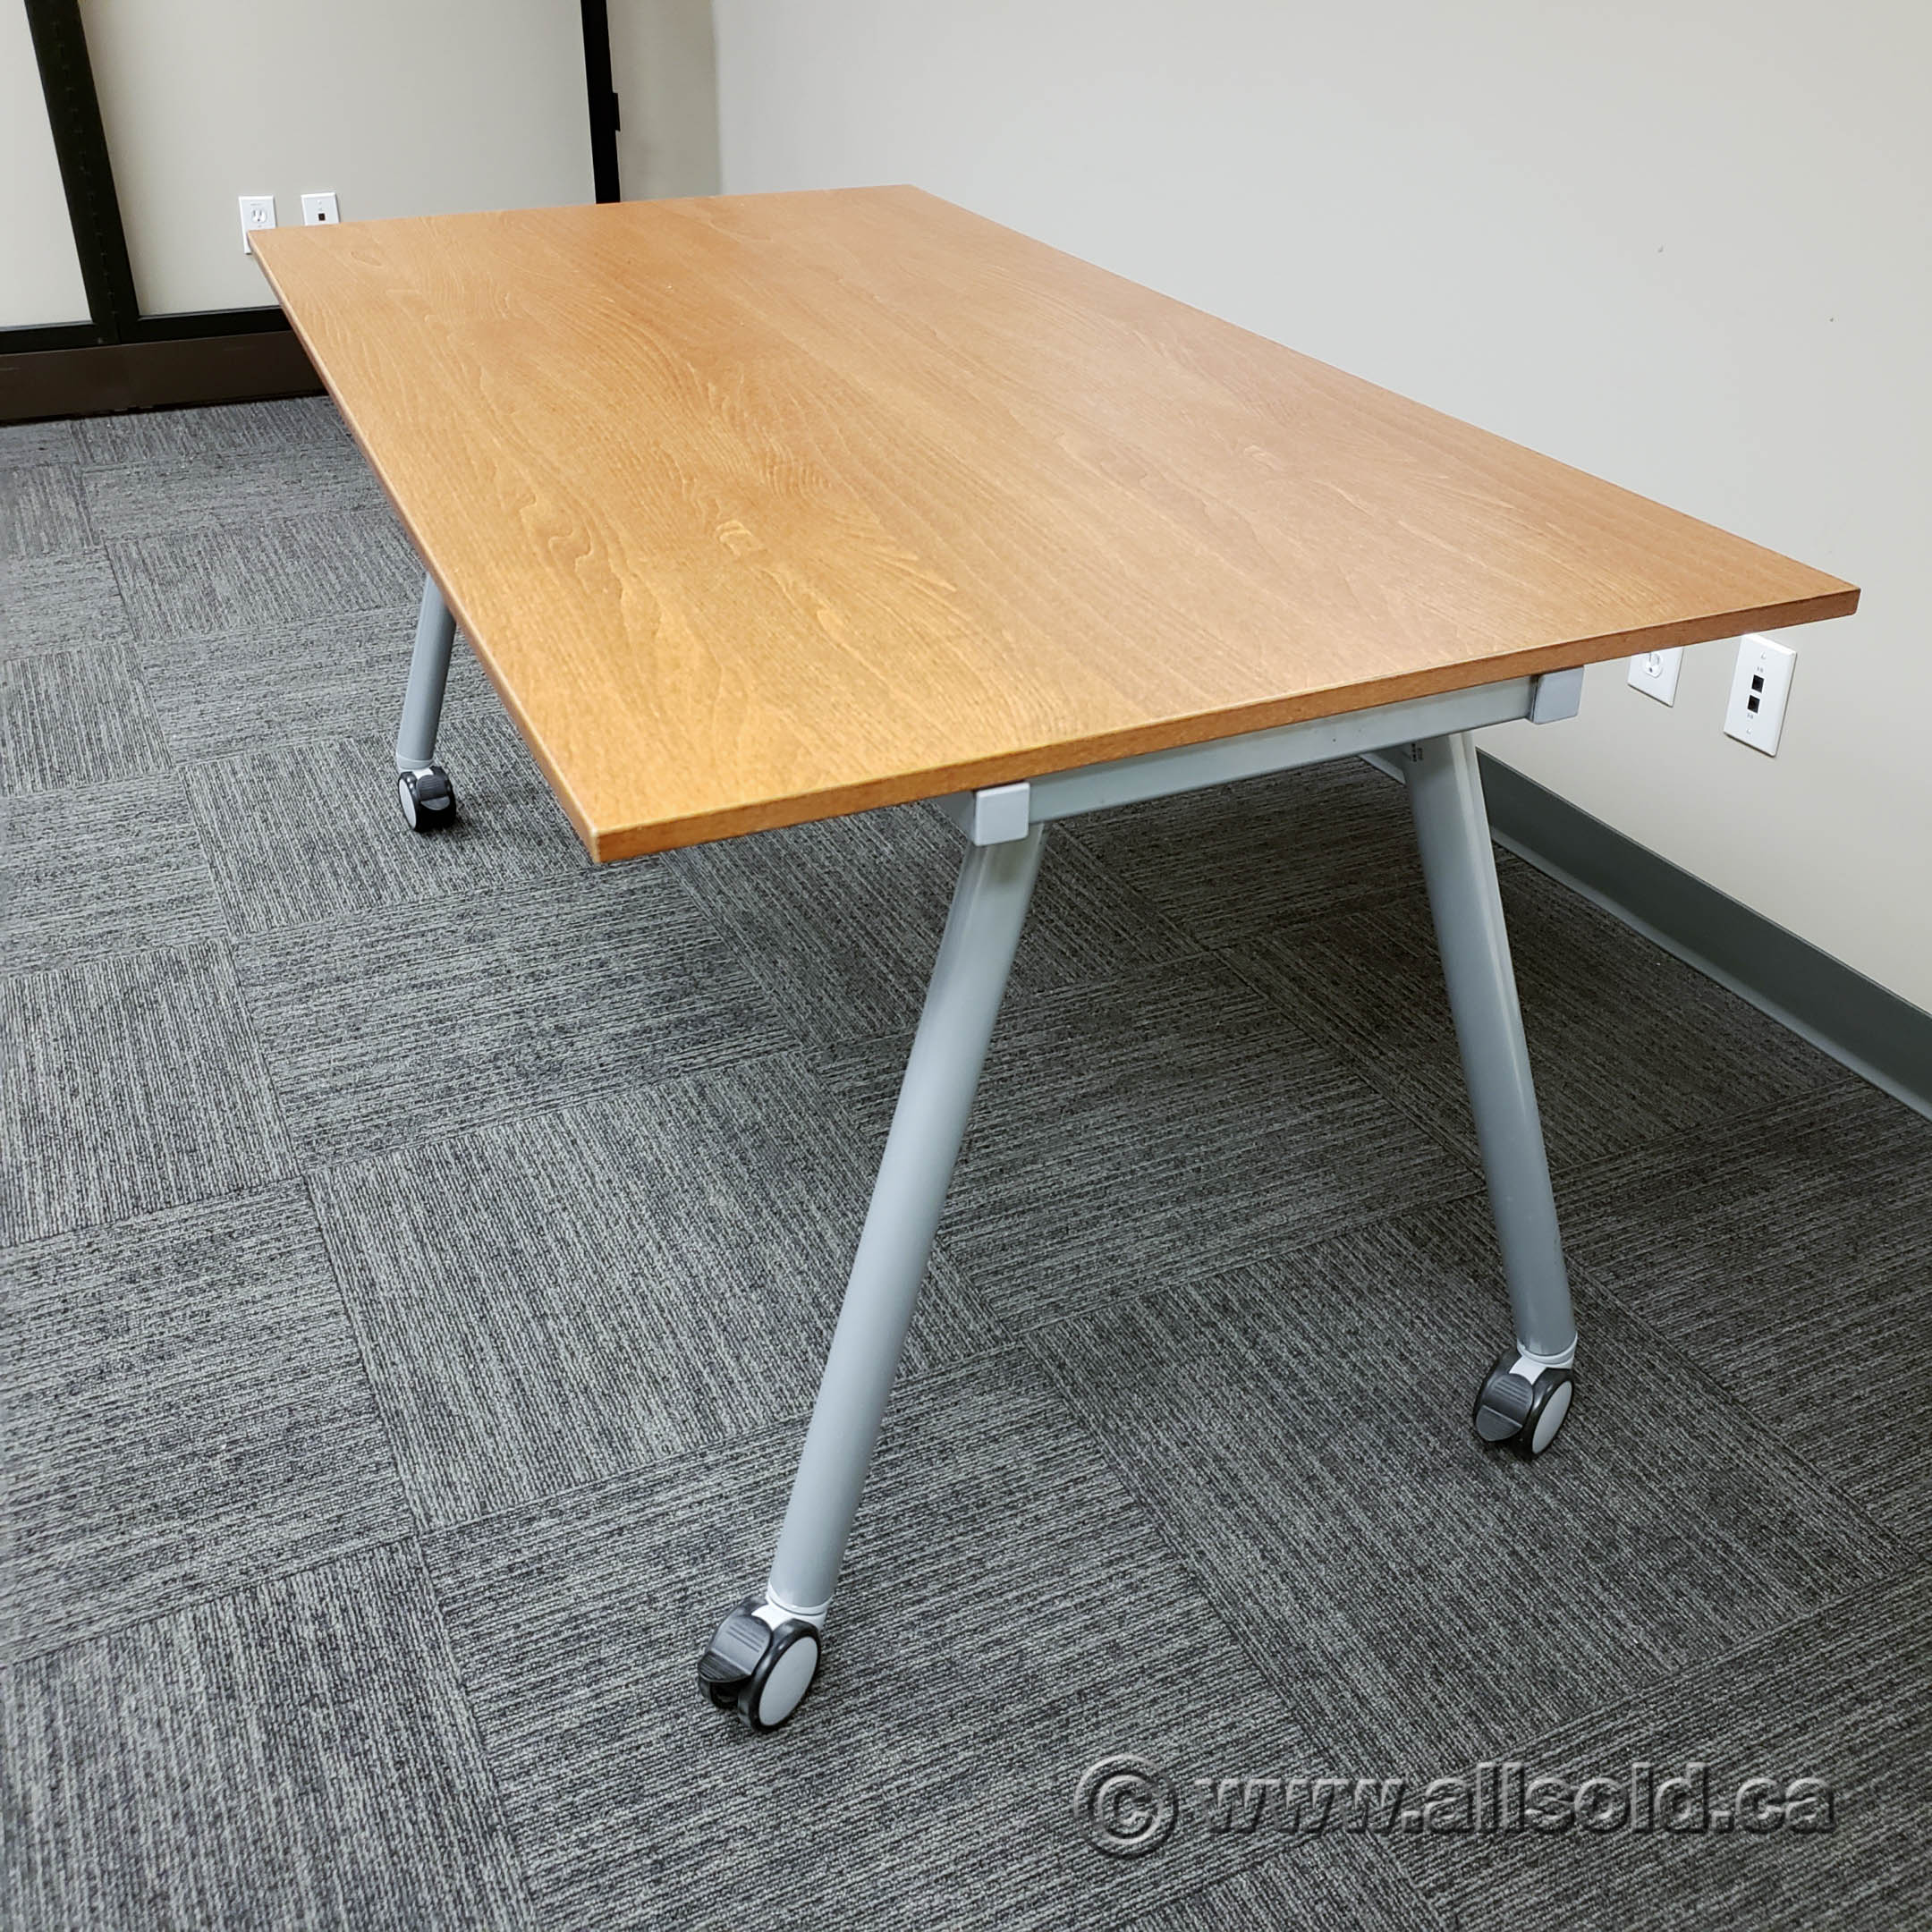 Ikea Galant Autumn Maple Rolling Training Table Allsold Ca Buy Sell Used Office Furniture Calgary